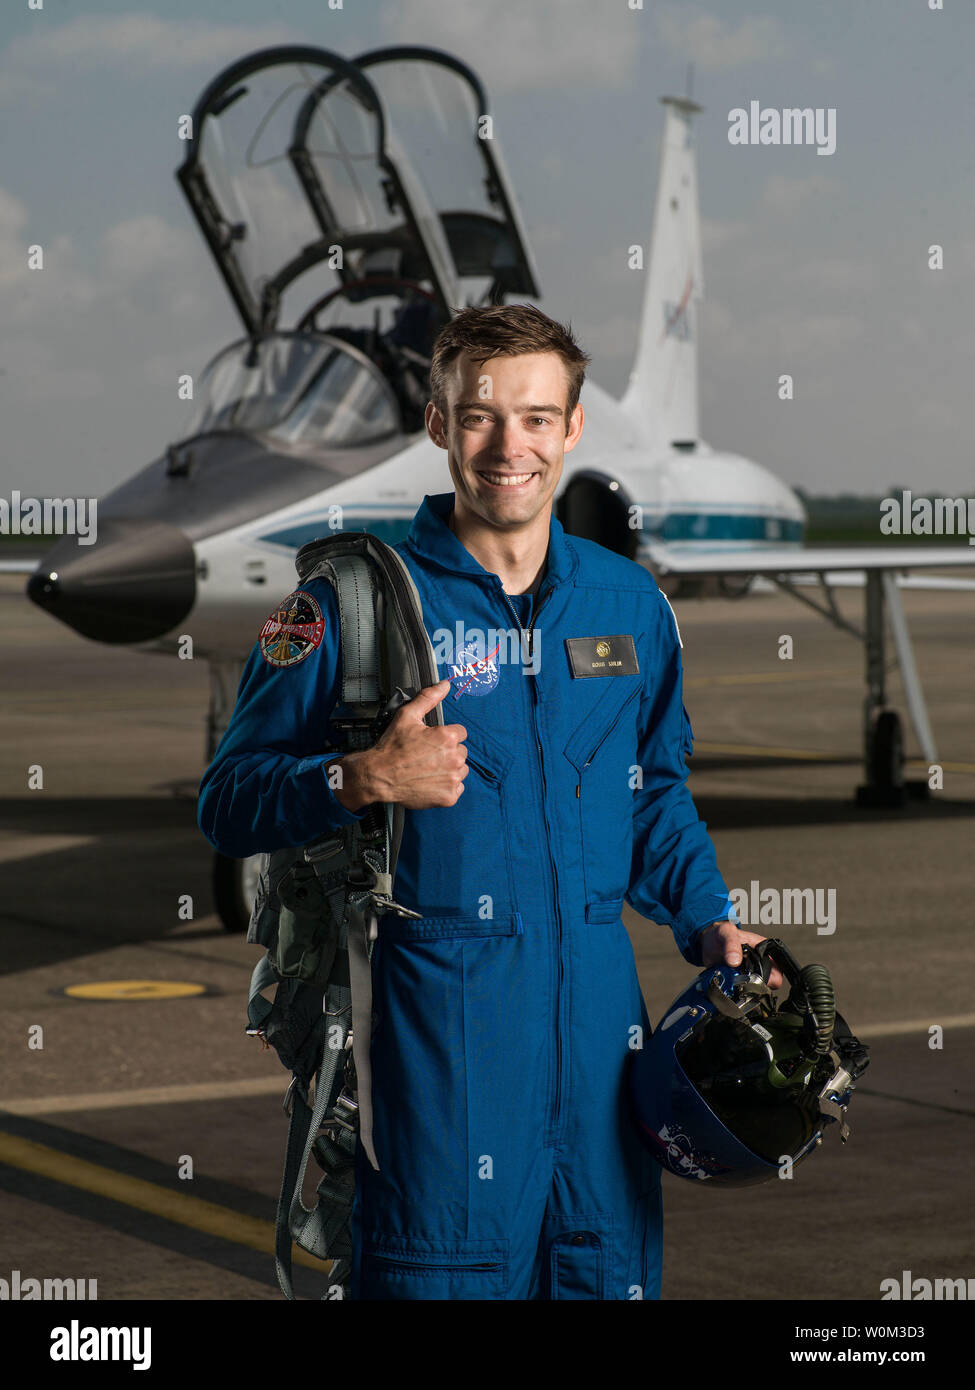 Robb Kulin has been selected by NASA to join the 2017 Astronaut Candidate Class. He will report for duty in August 2017. The Alaska native is a Launch Chief Engineer at SpaceX and earned a Bachelor's degree in Mechanical Engineering from the University of Denver, before going on to complete a Master's degree in Materials Science and a Doctorate in Engineering at the University of California, San Diego. NASA Photo by Robert Markowitz/UPI - Stock Image